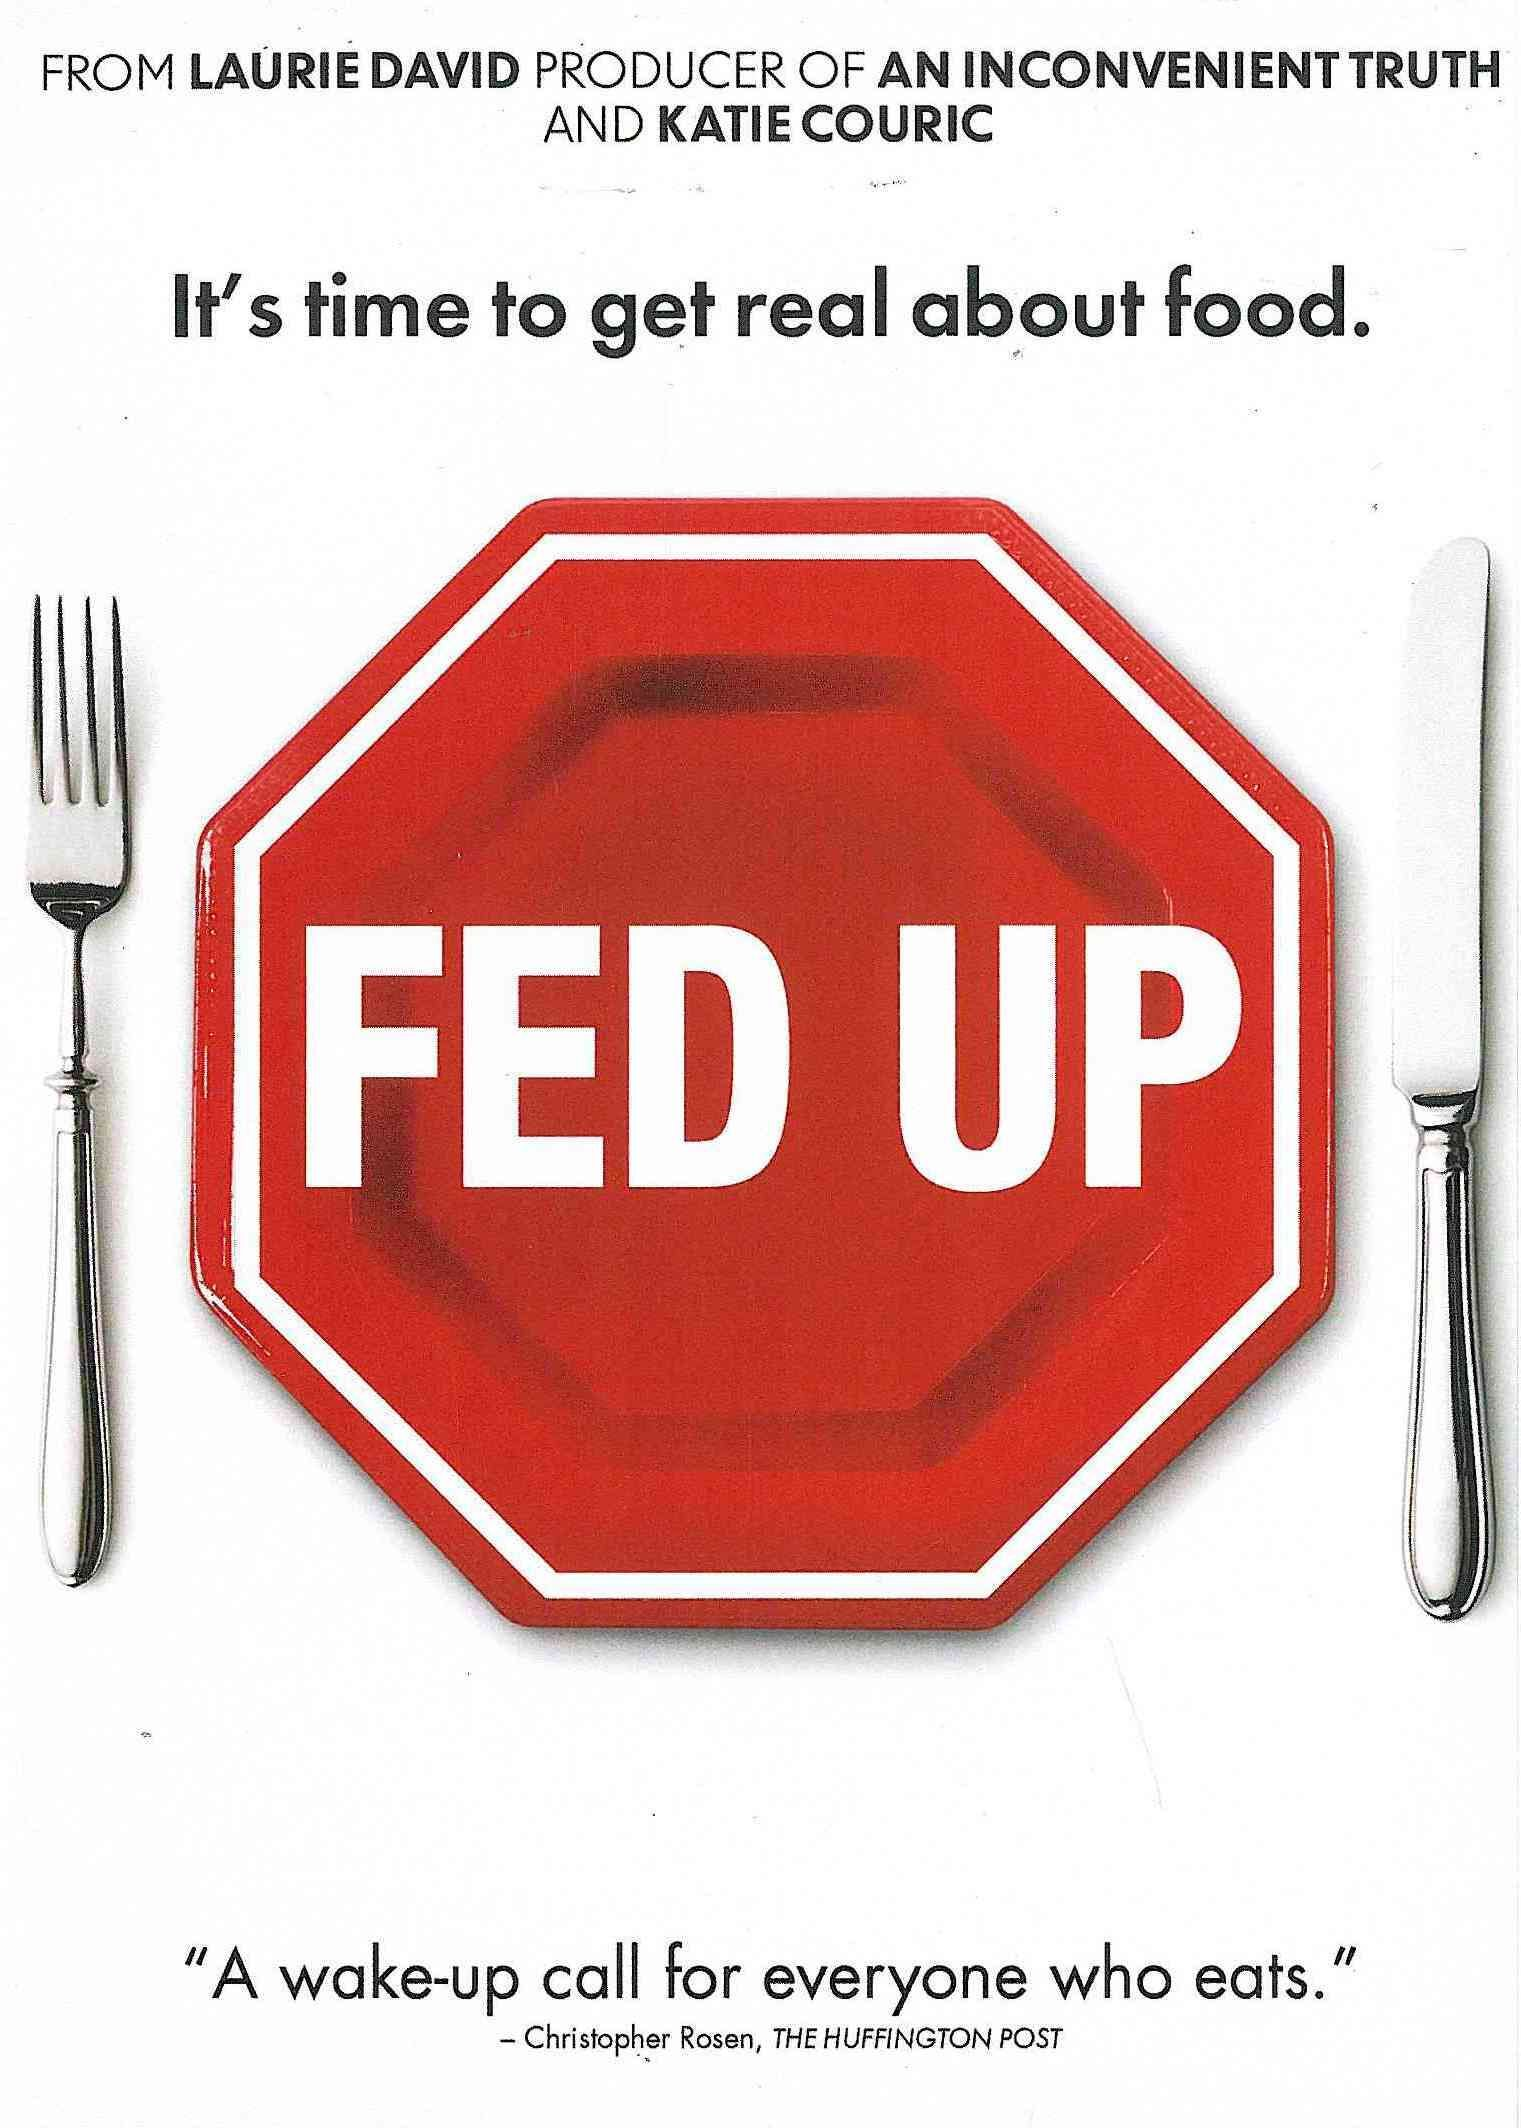 Fed Up With Movies Like Fed Up >> Stephanie Soechtig S Documentary Fed Up Narrated By Katie Couric